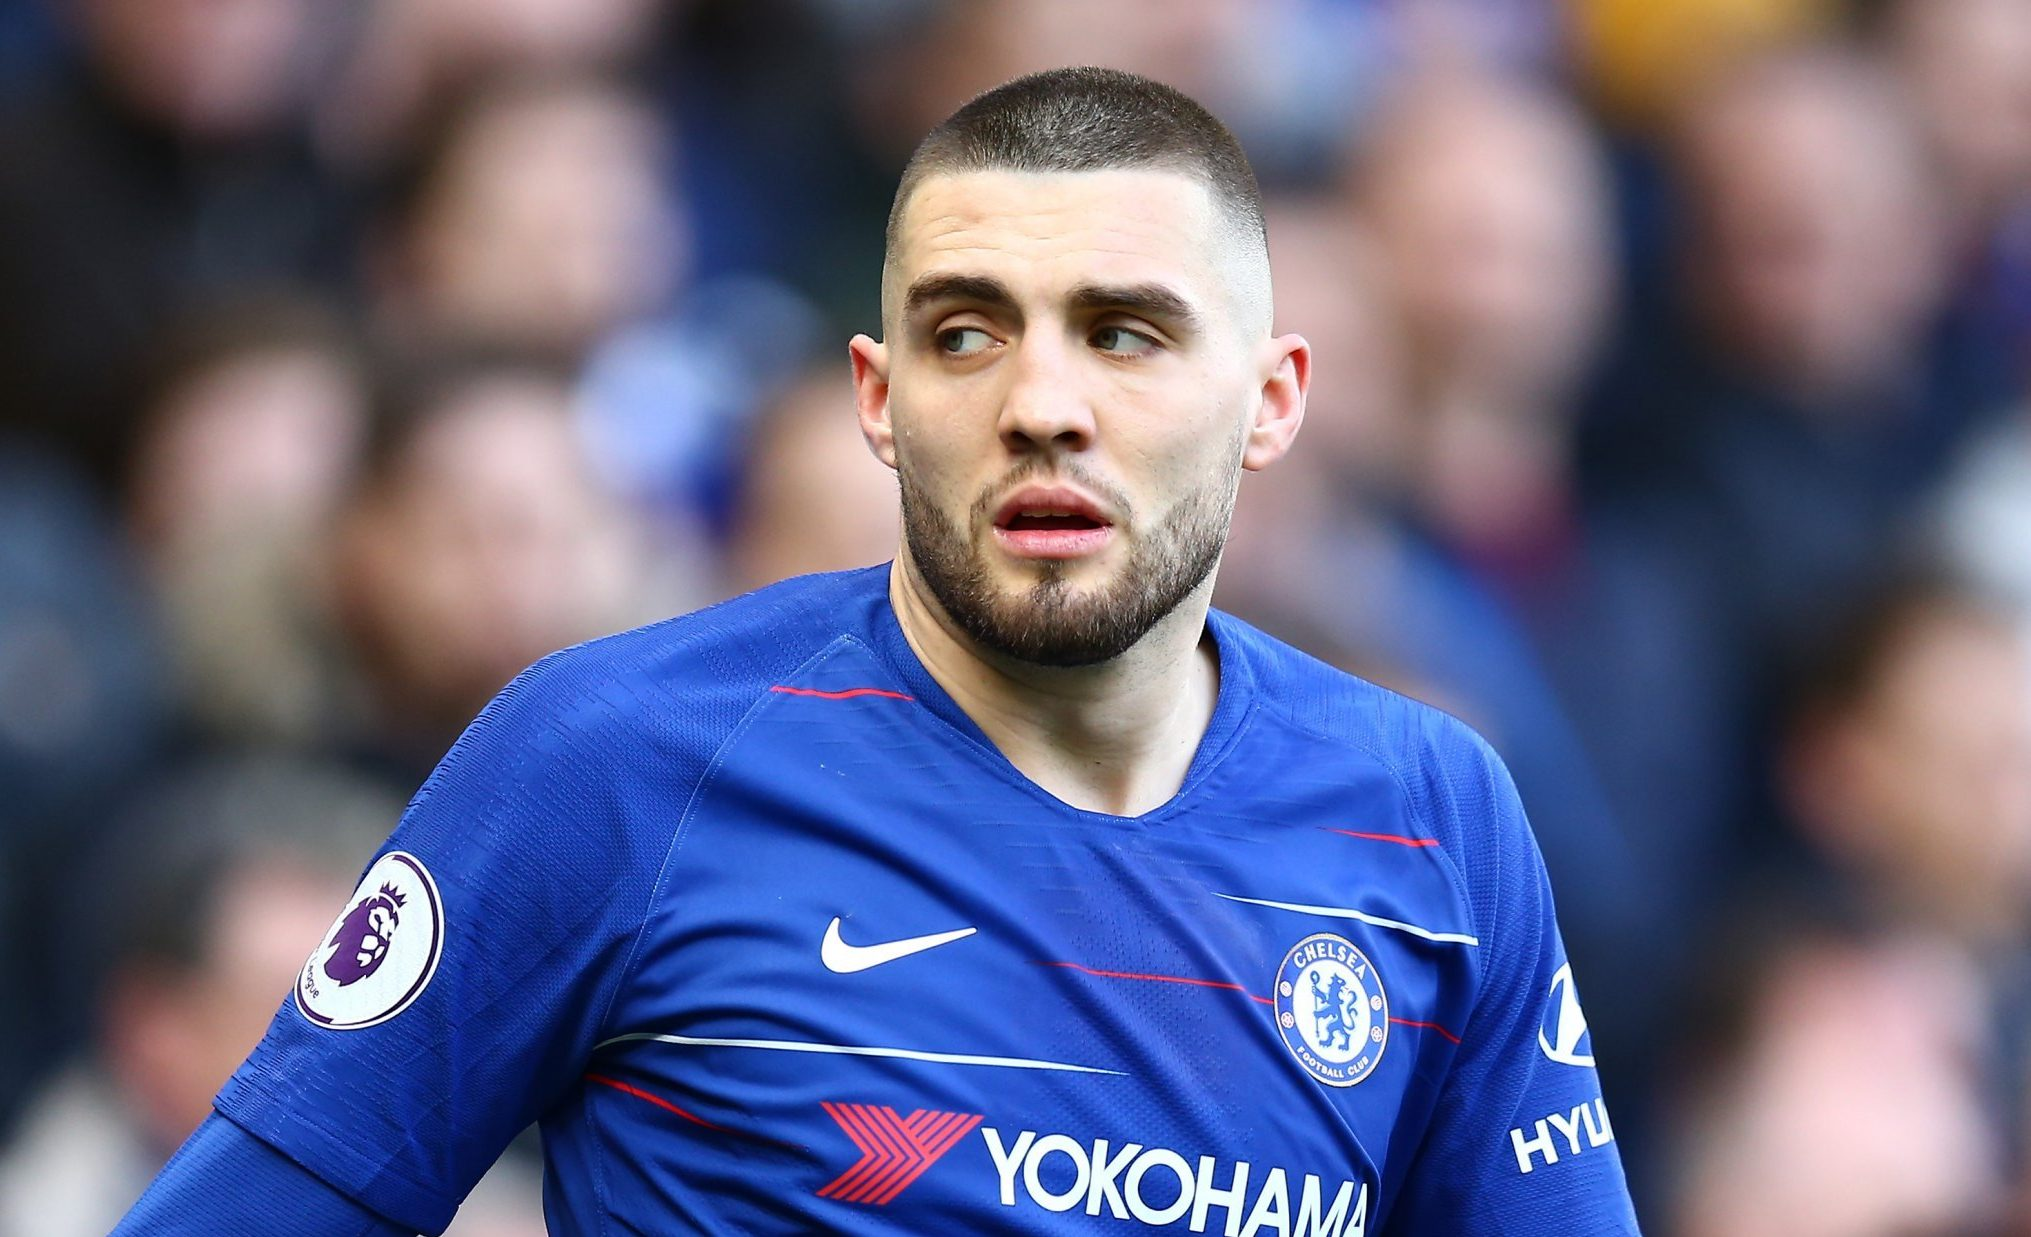 Mateo Kovacic open to joining rival Premier League club if Chelsea fail to escape transfer ban